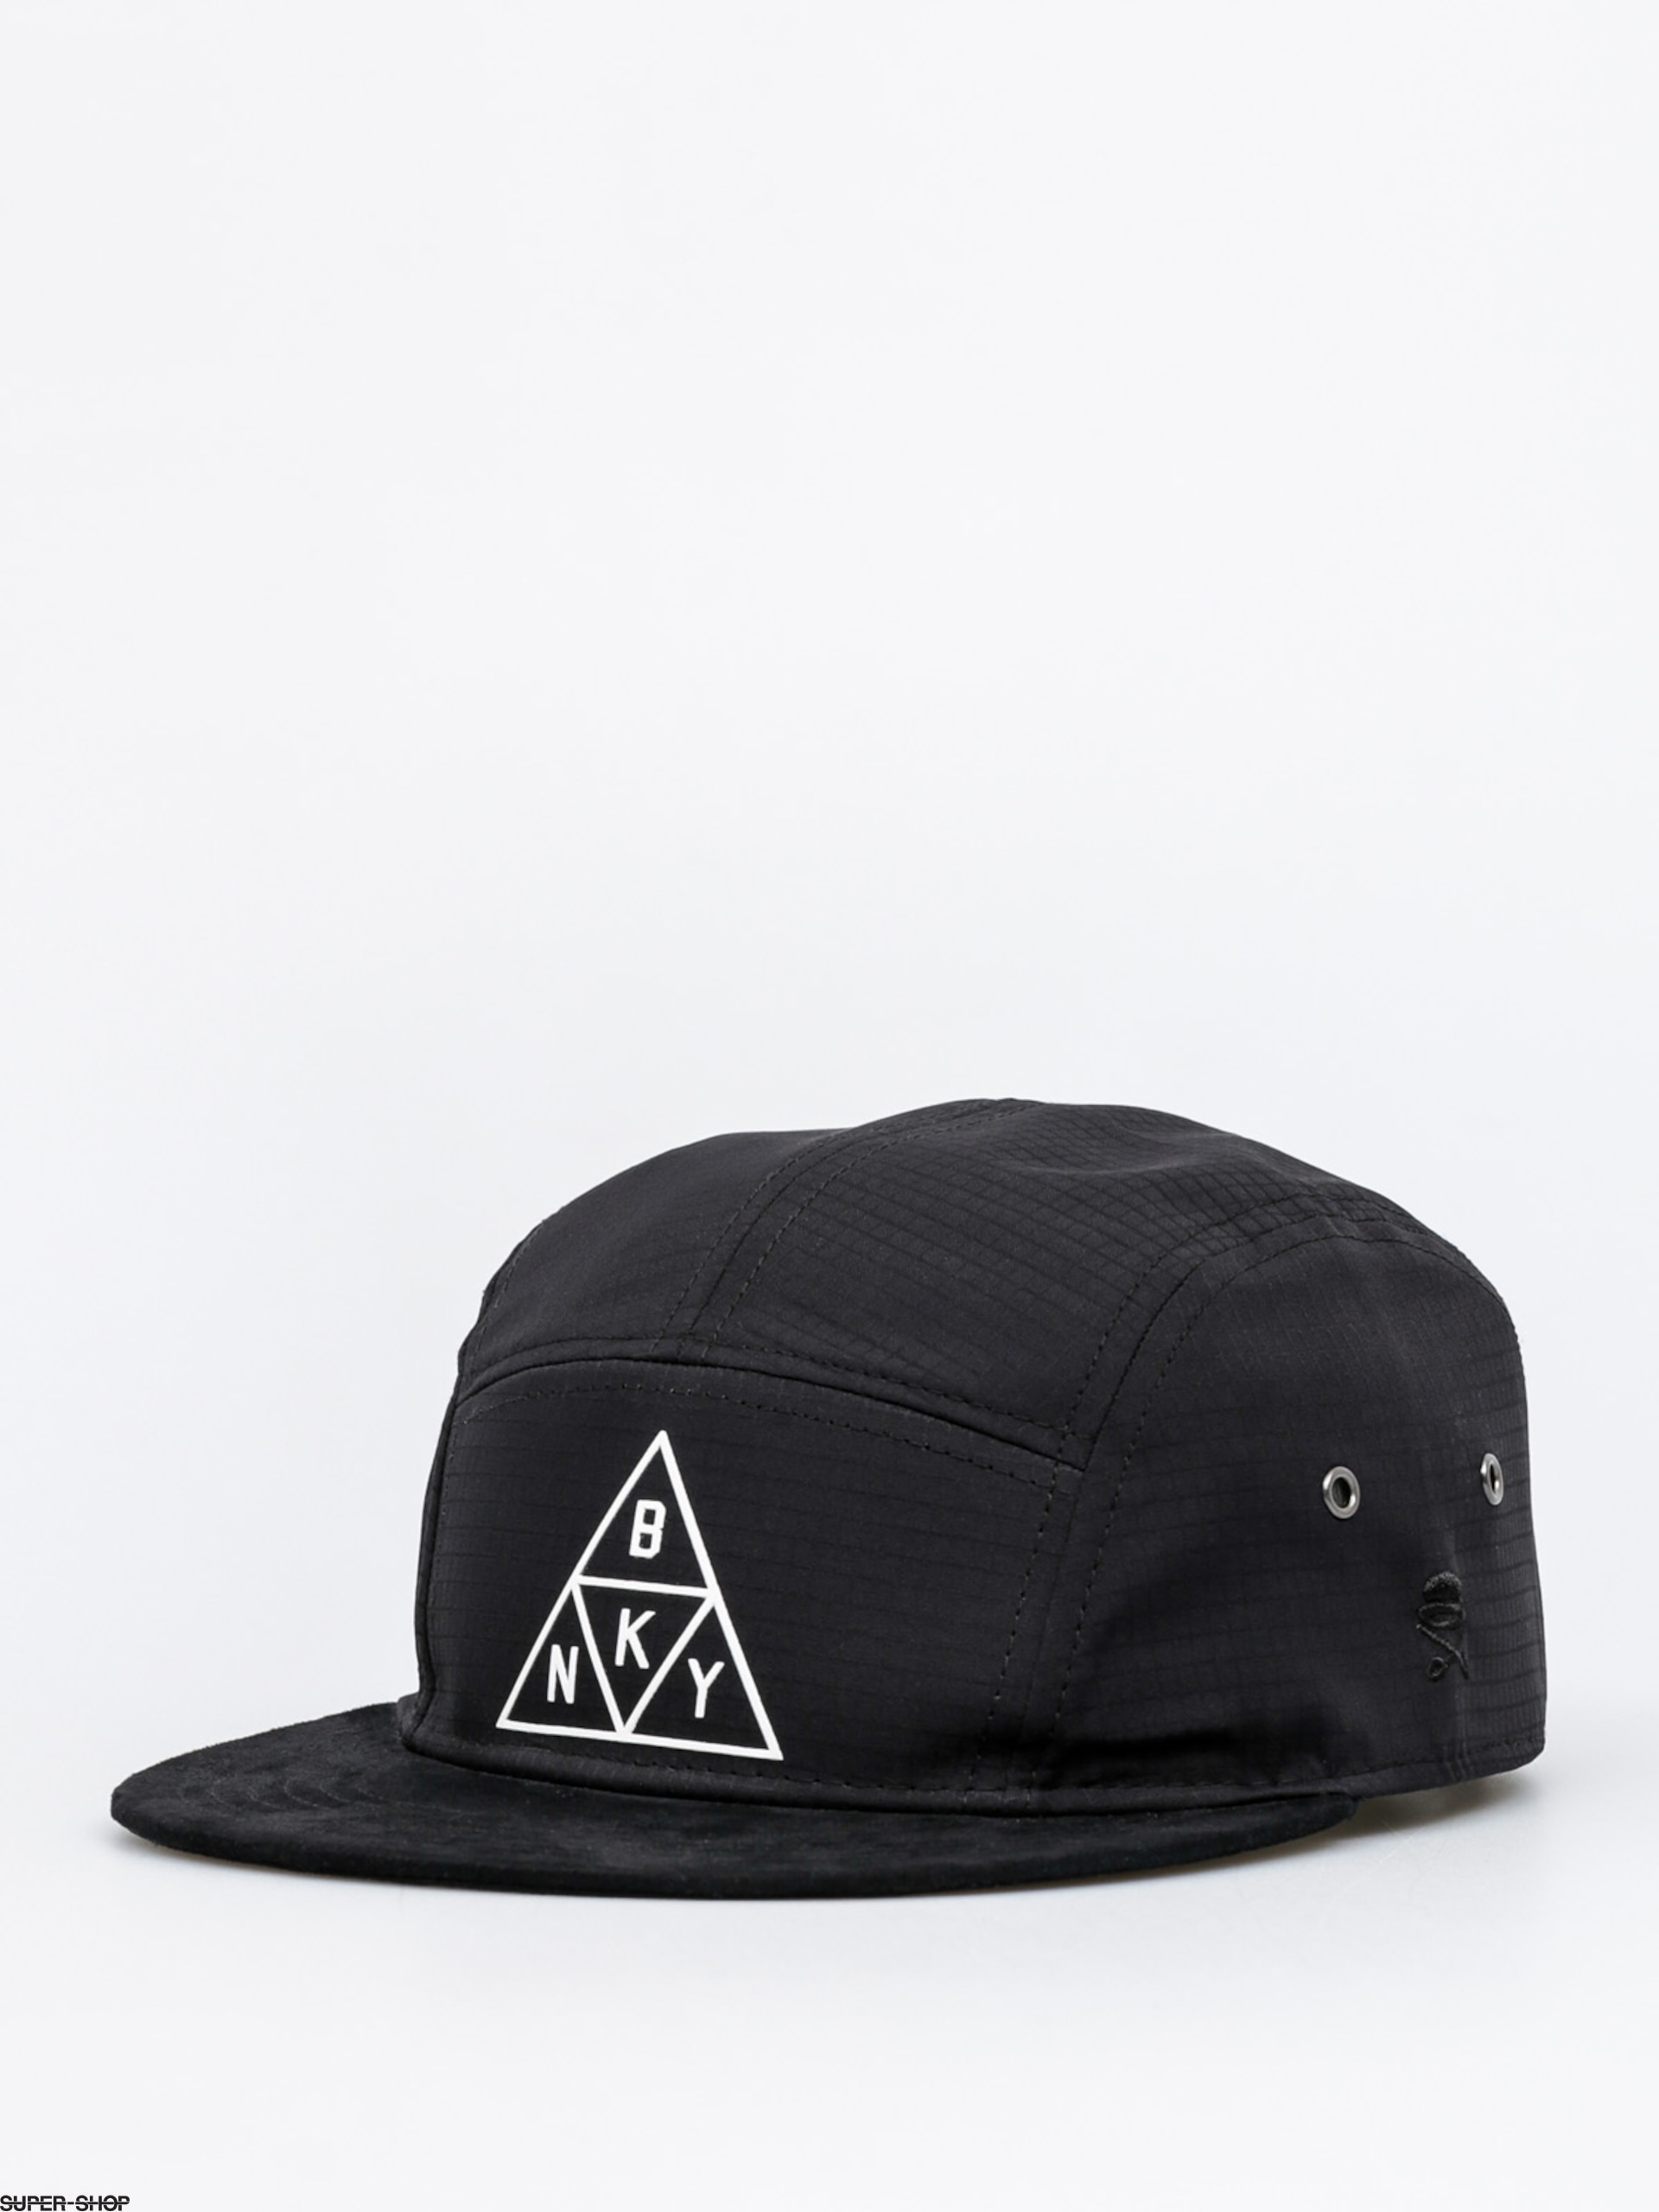 Cayler & Sons Cap Wl Briangle 5 Panel ZD (black/white)